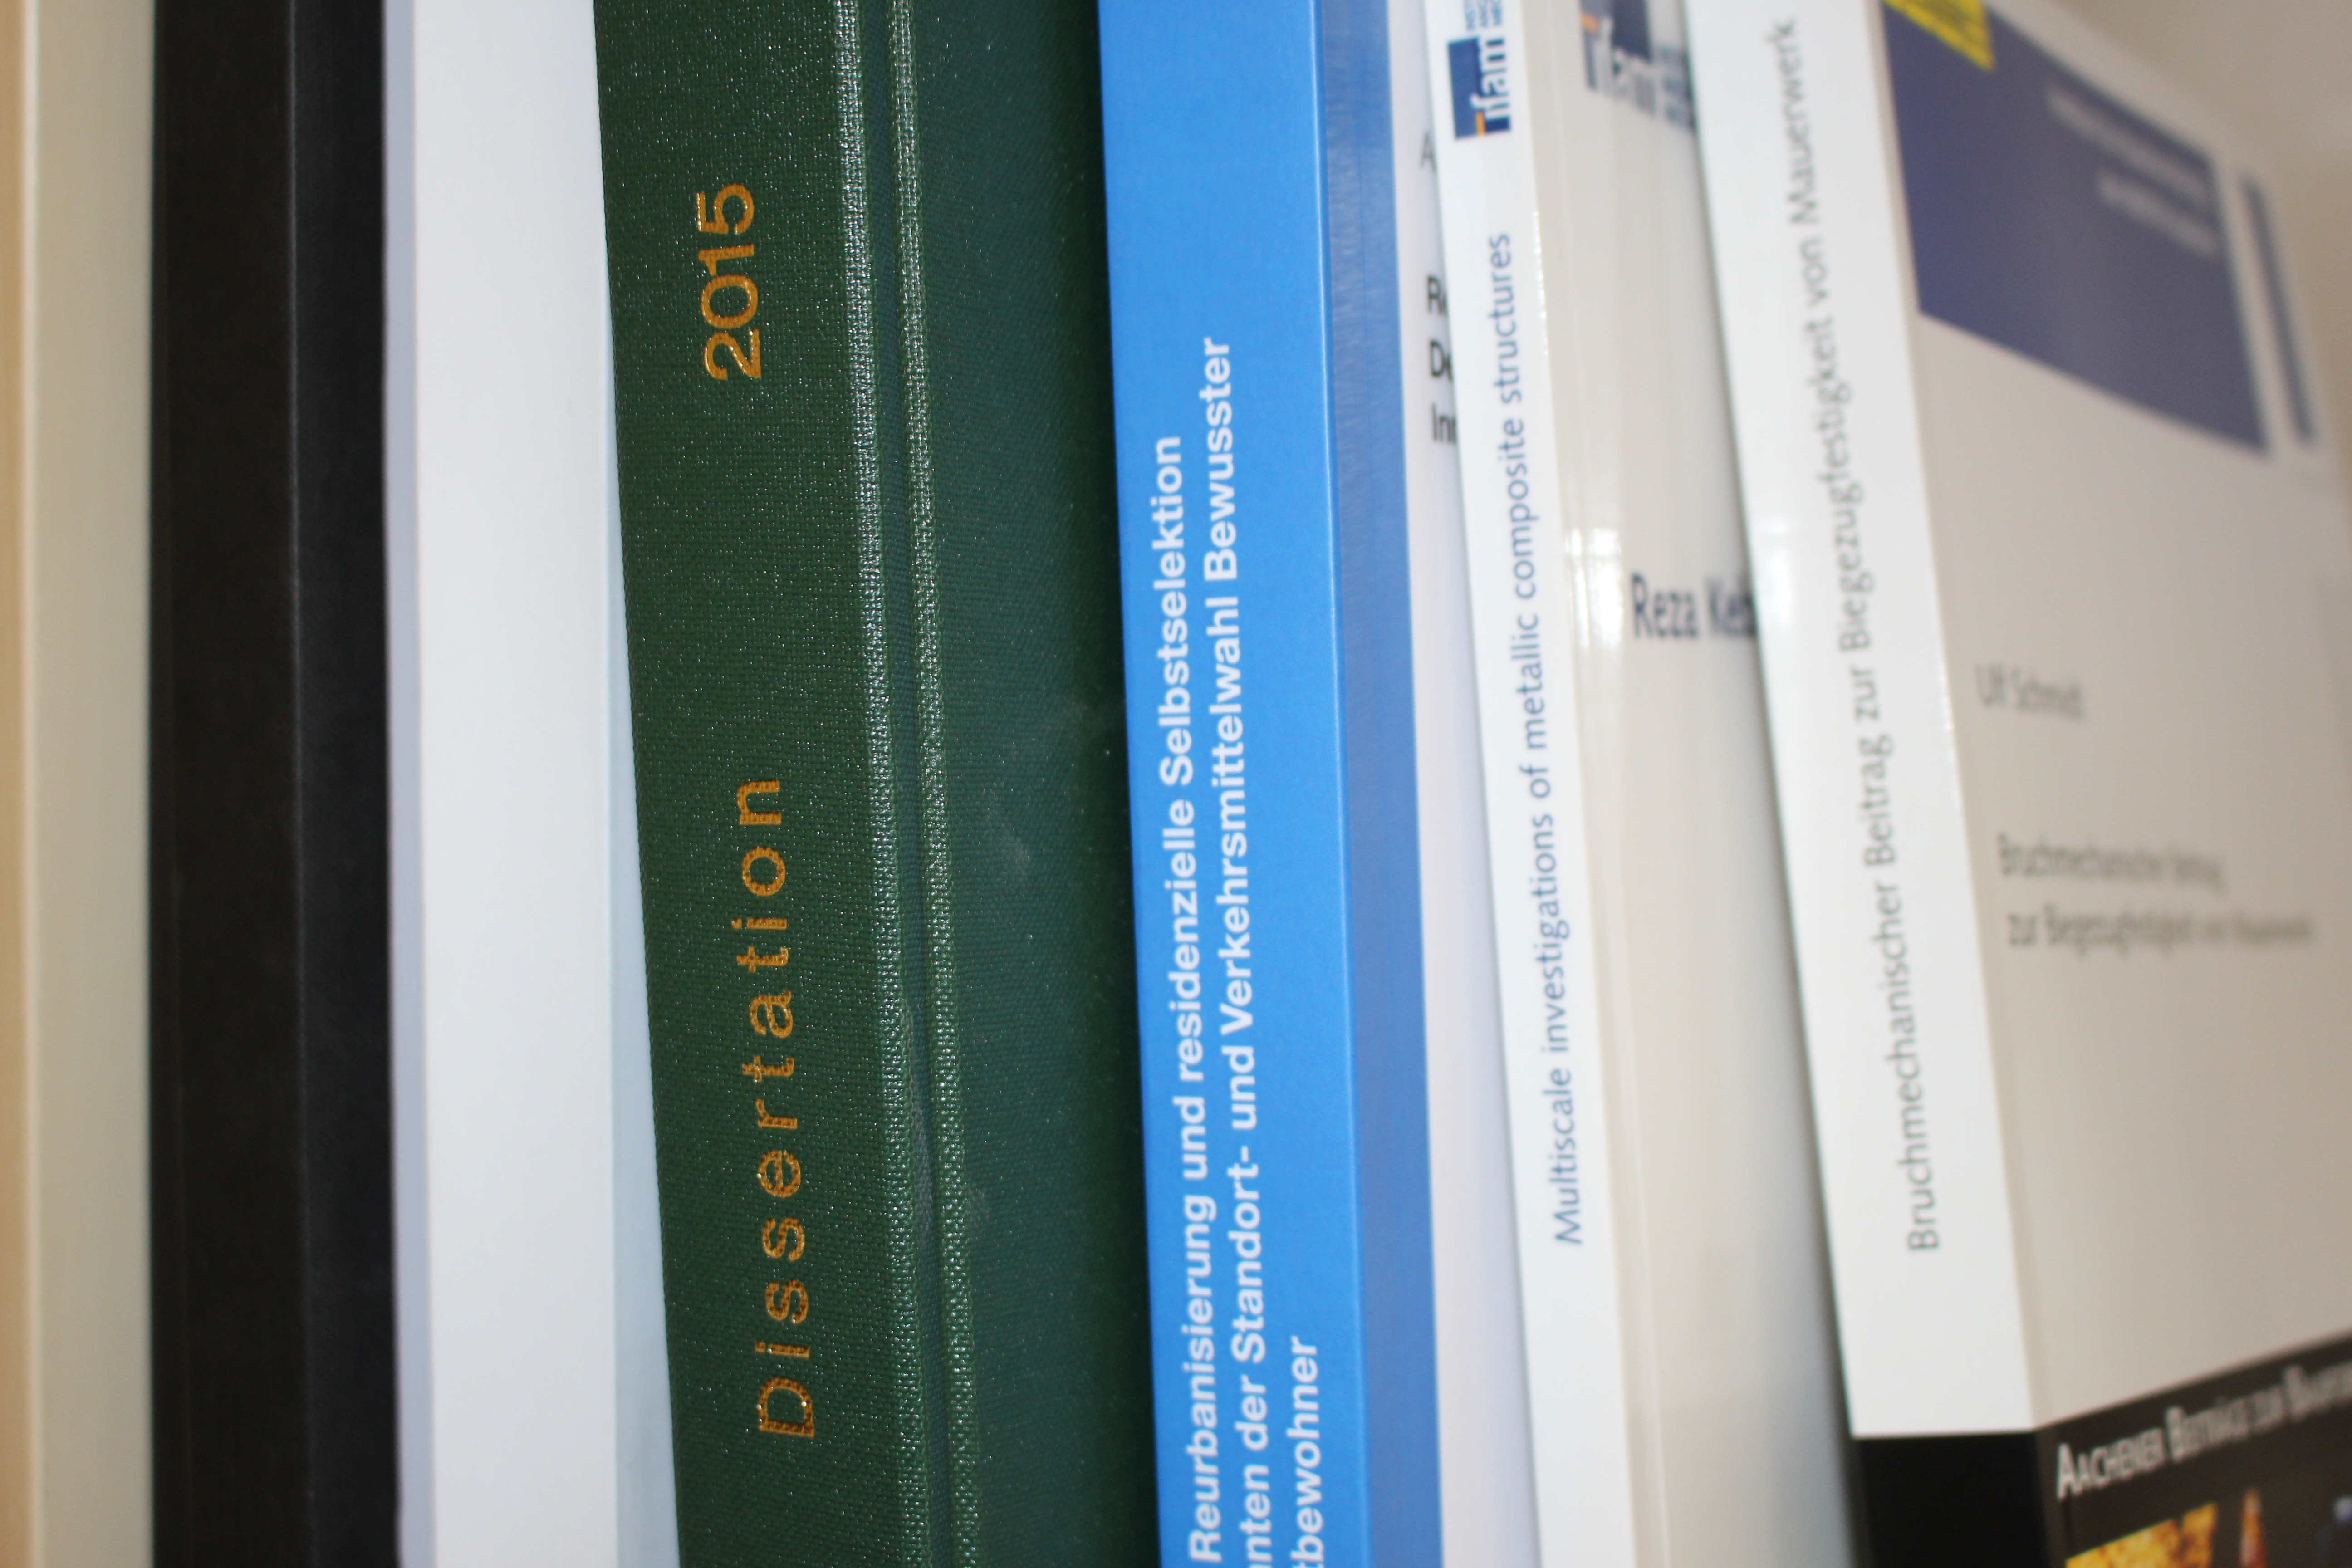 The spine of a few dissertations